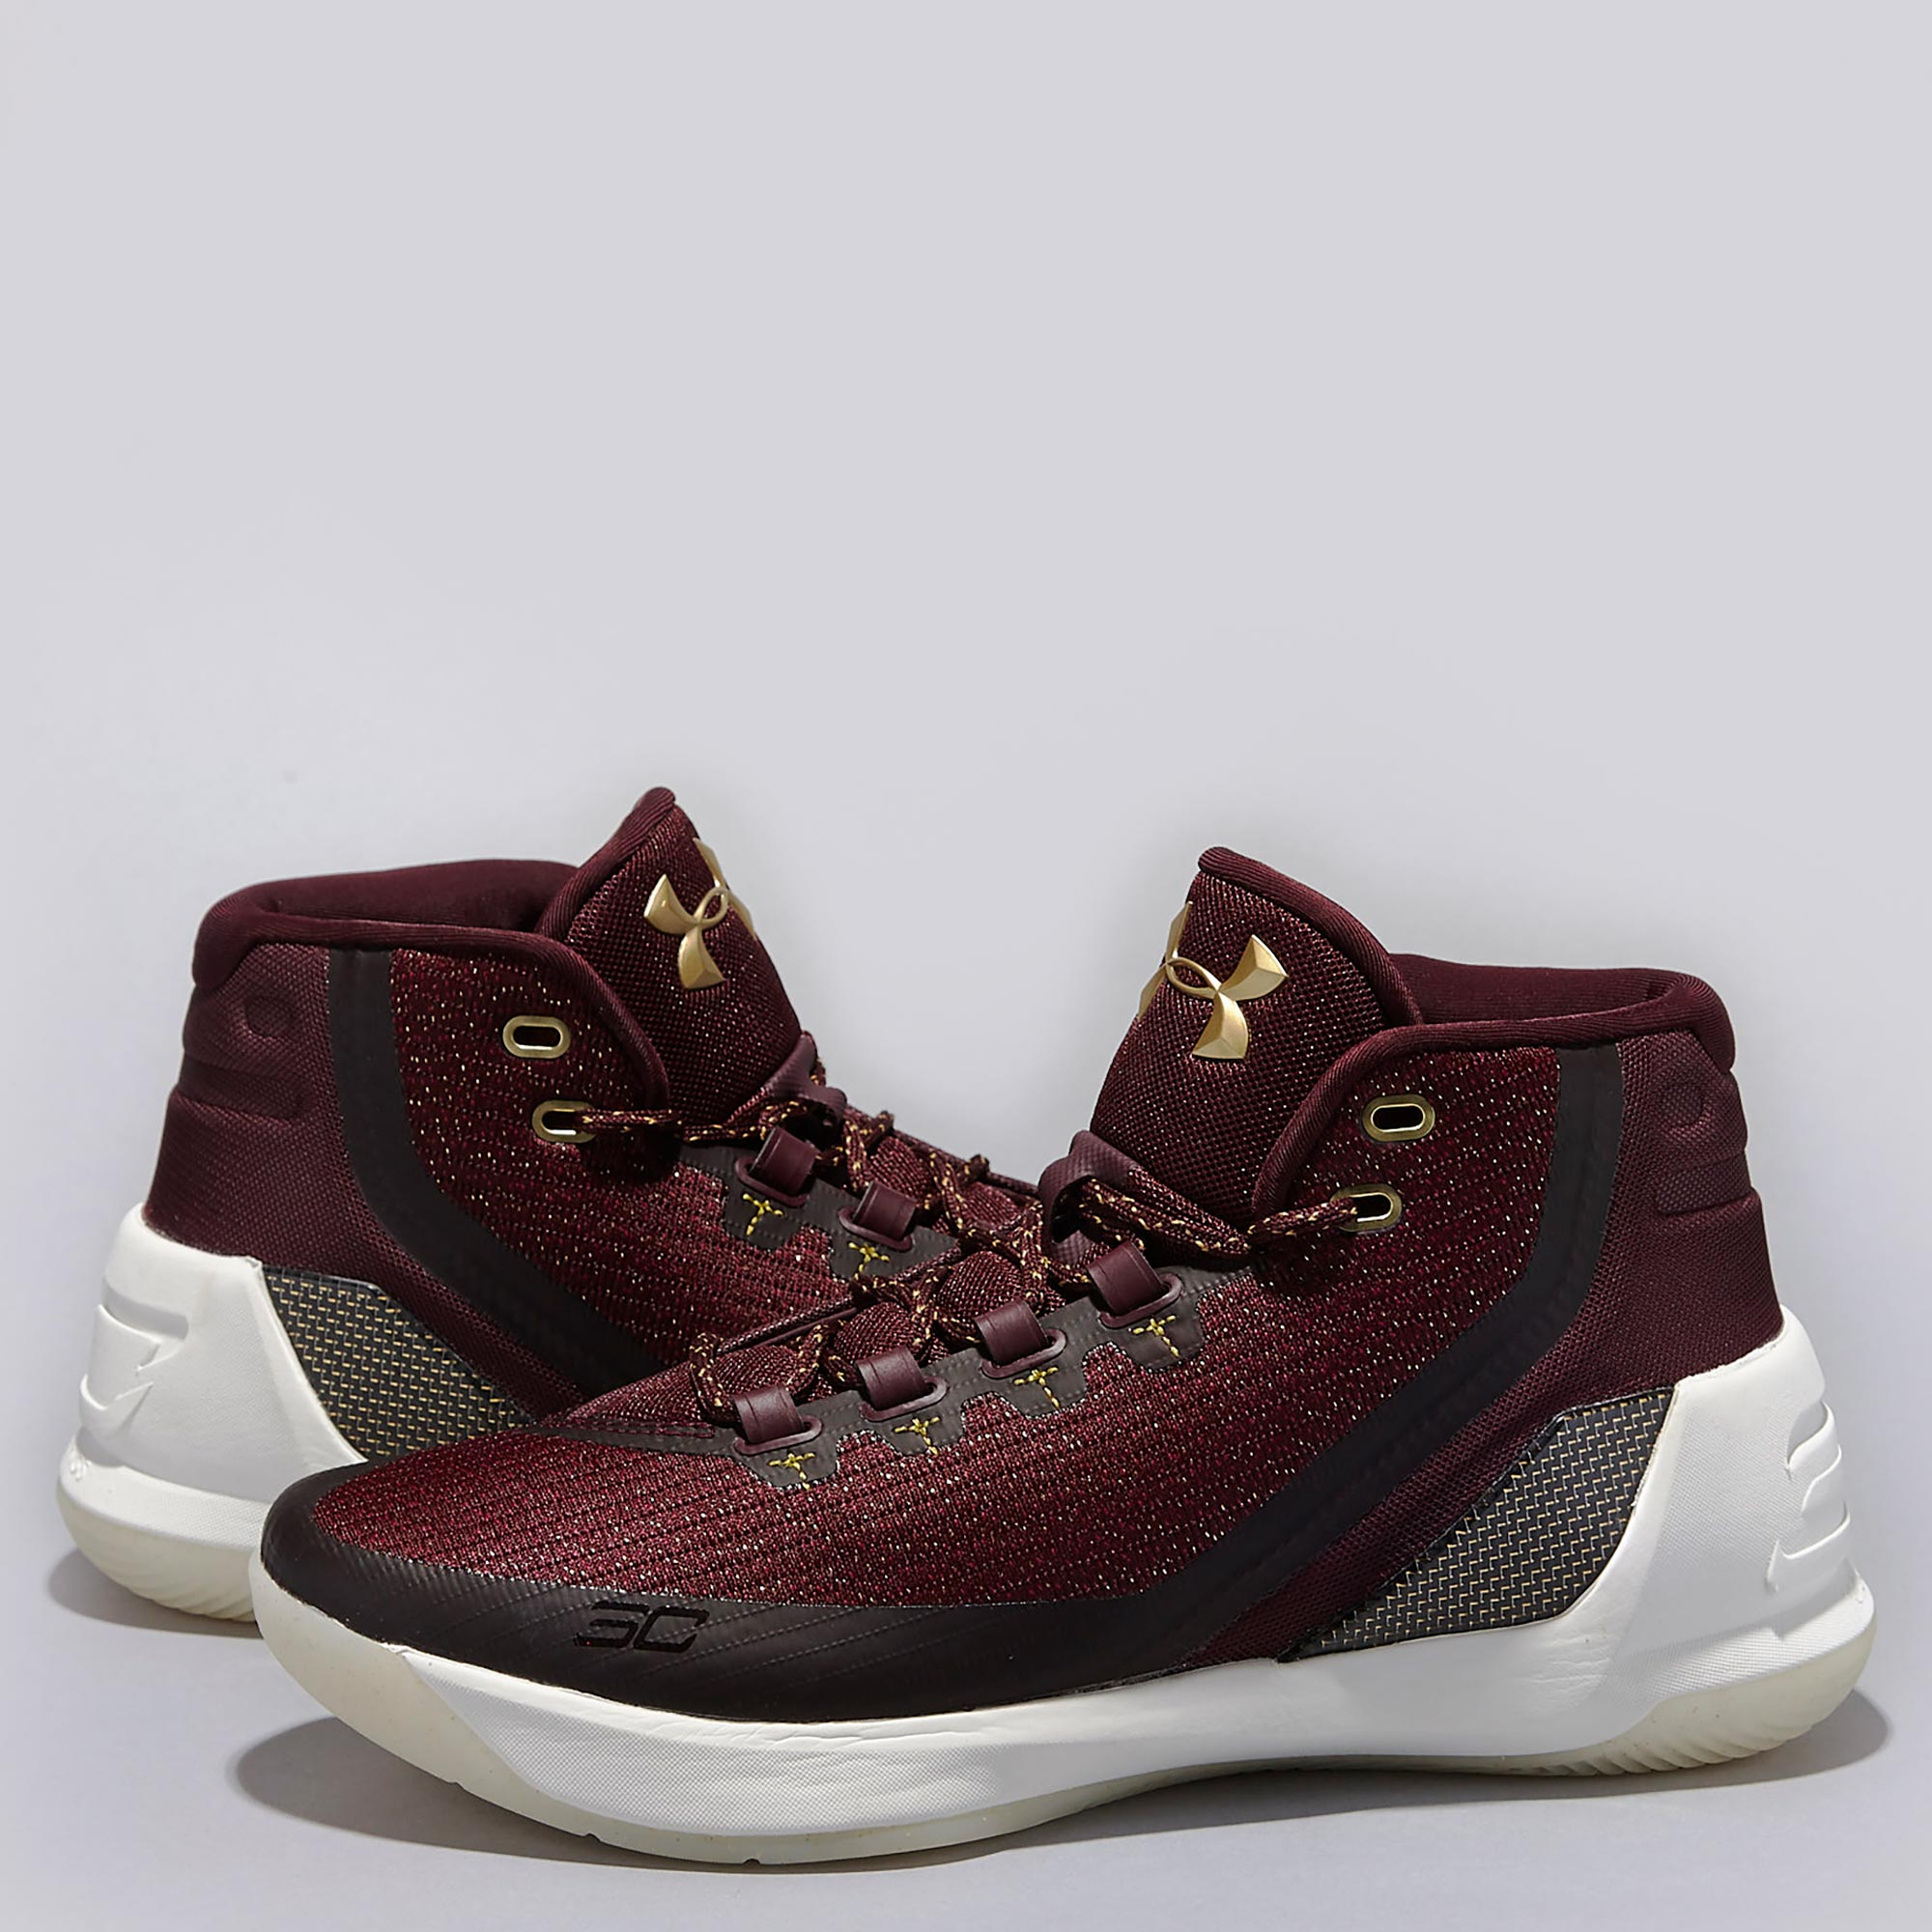 Under Armour Curry 3 Basketball Shoe - Christmas